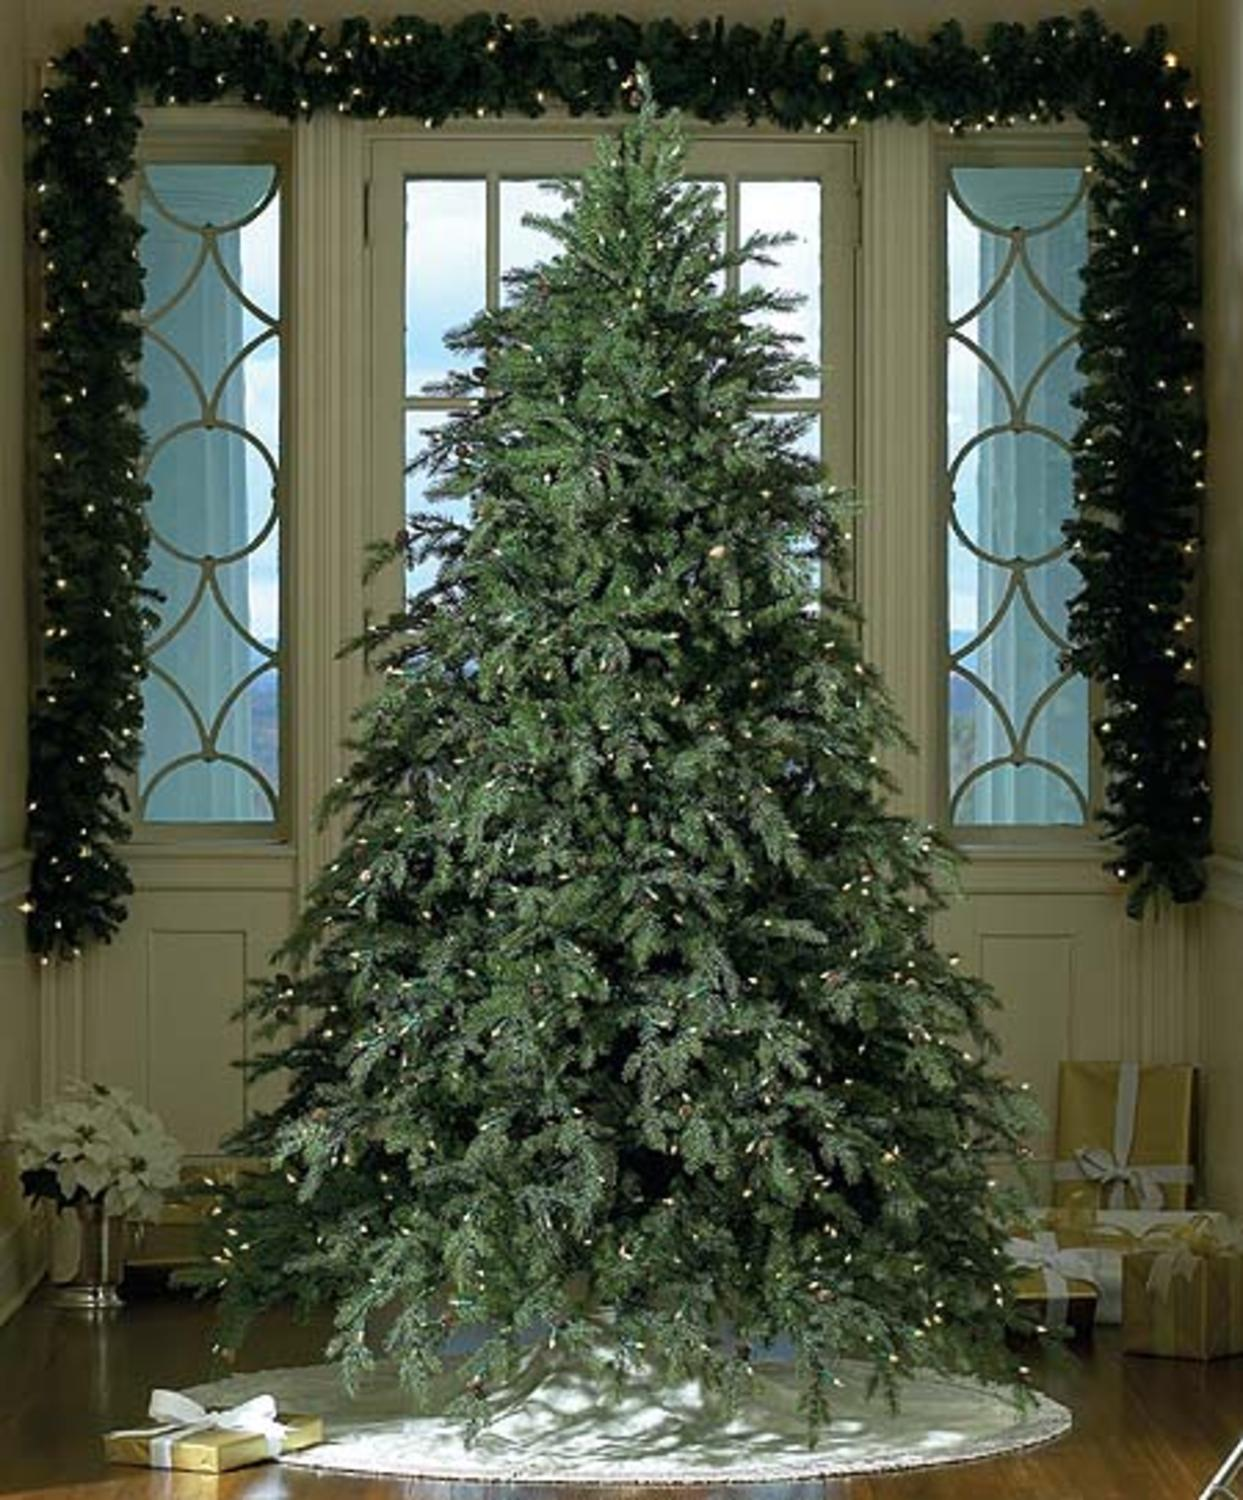 unlit 65 x 62 alaskan pine artificial christmas tree flocked white on green walmartcom - Christmas Tree Walmart